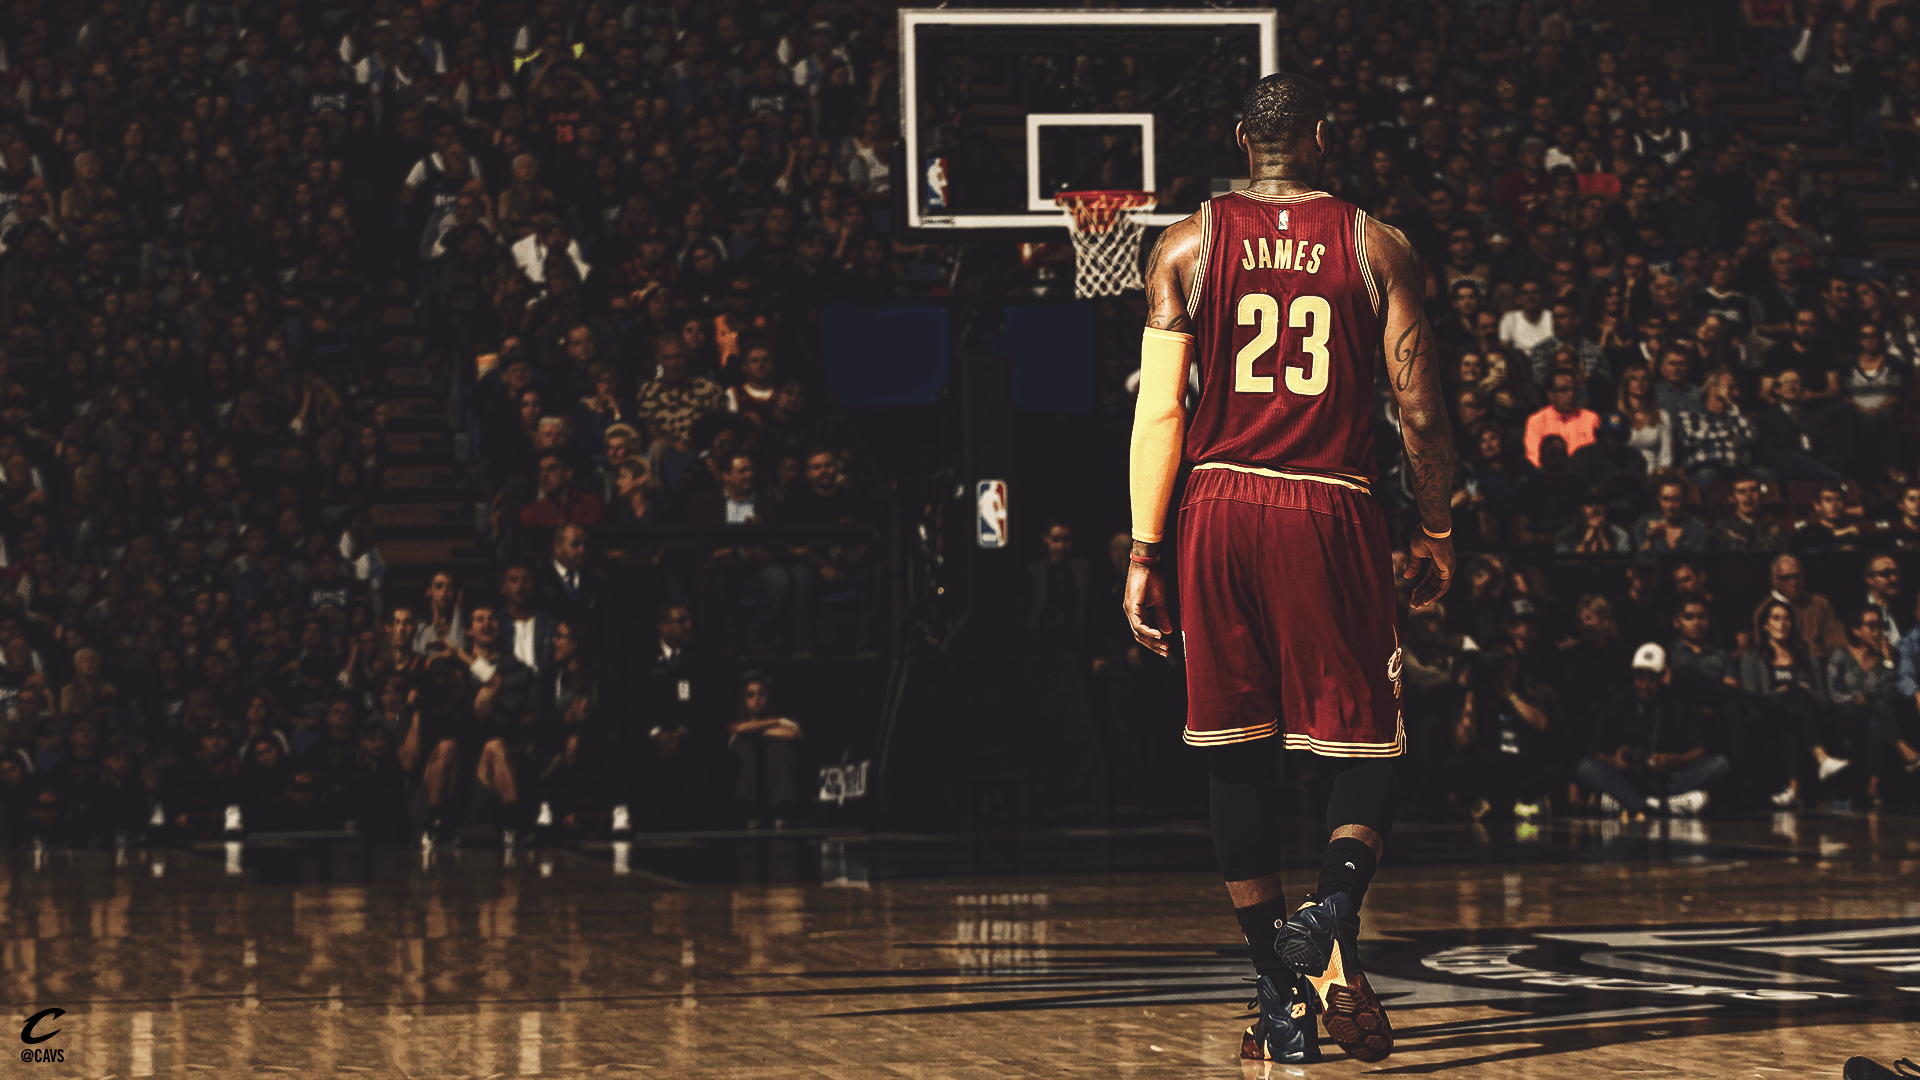 lebron james cleveland desktop wallpaper 994